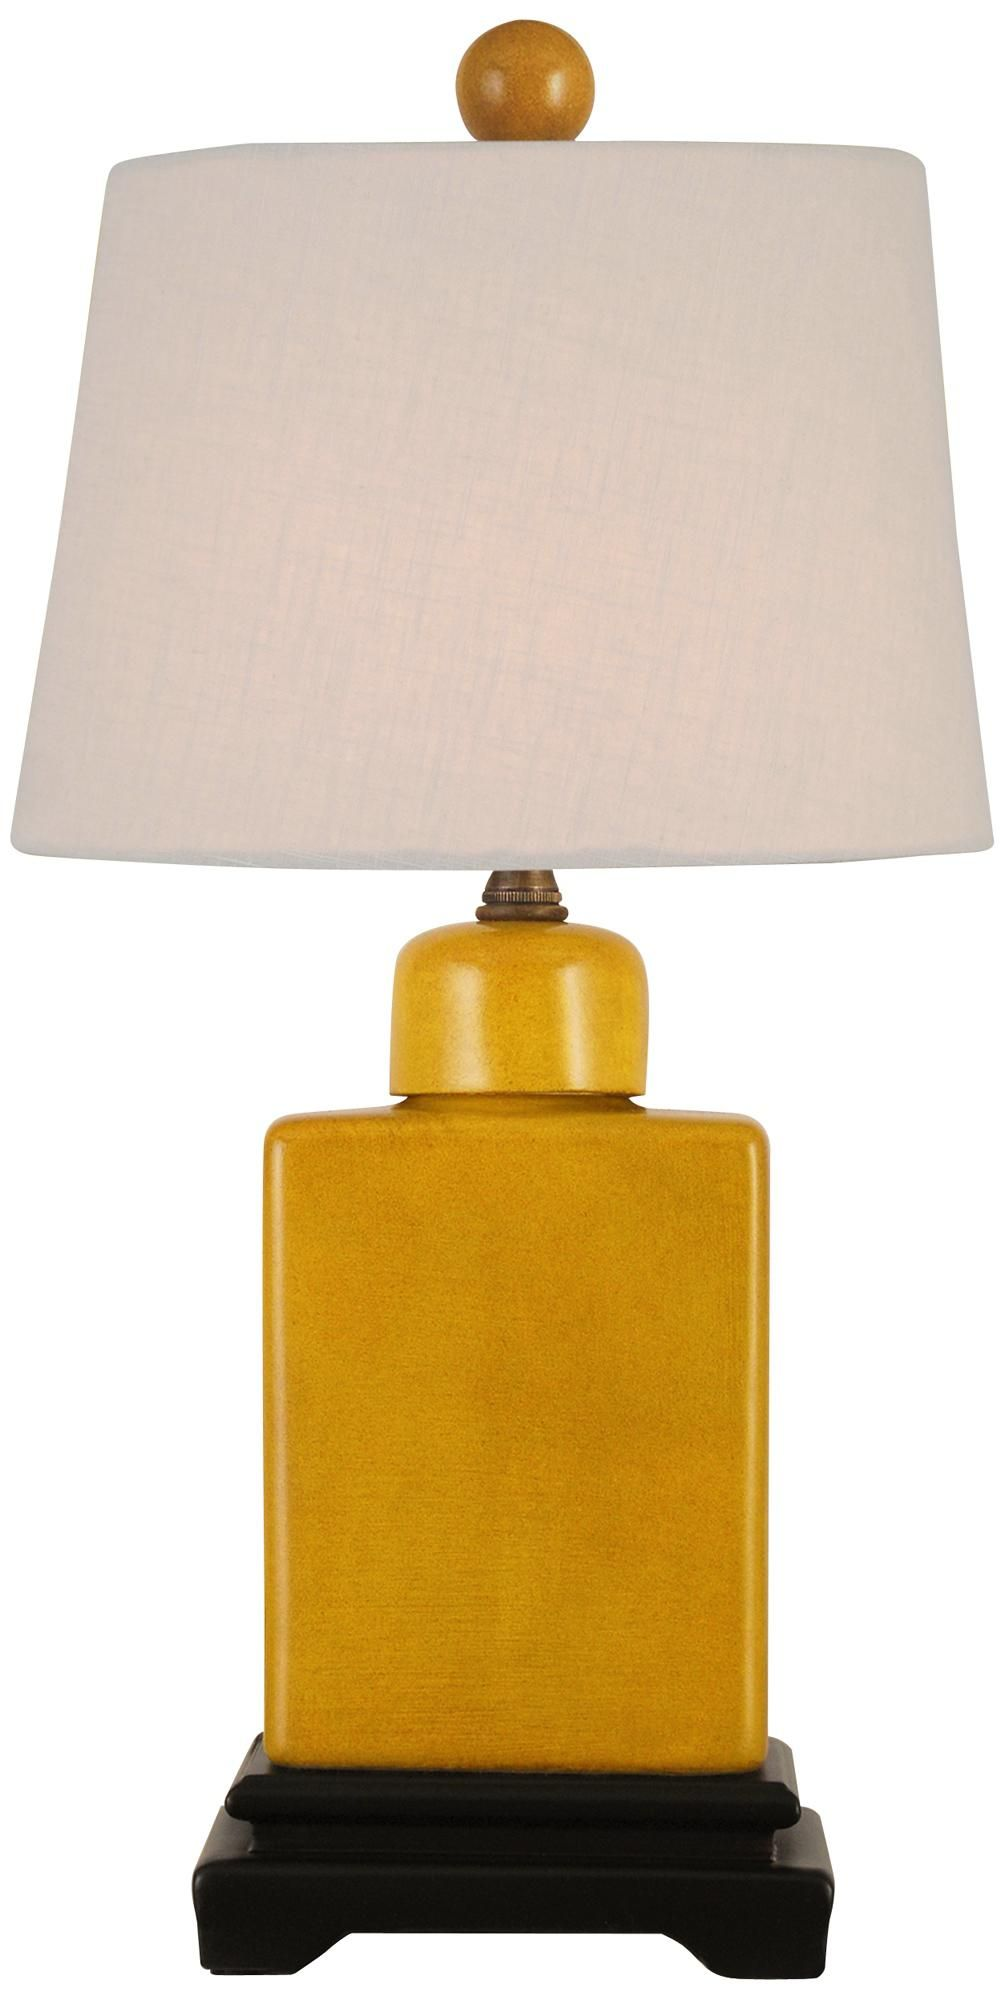 Mustard Yellow With Off White Shade Porcelain Table Lamp